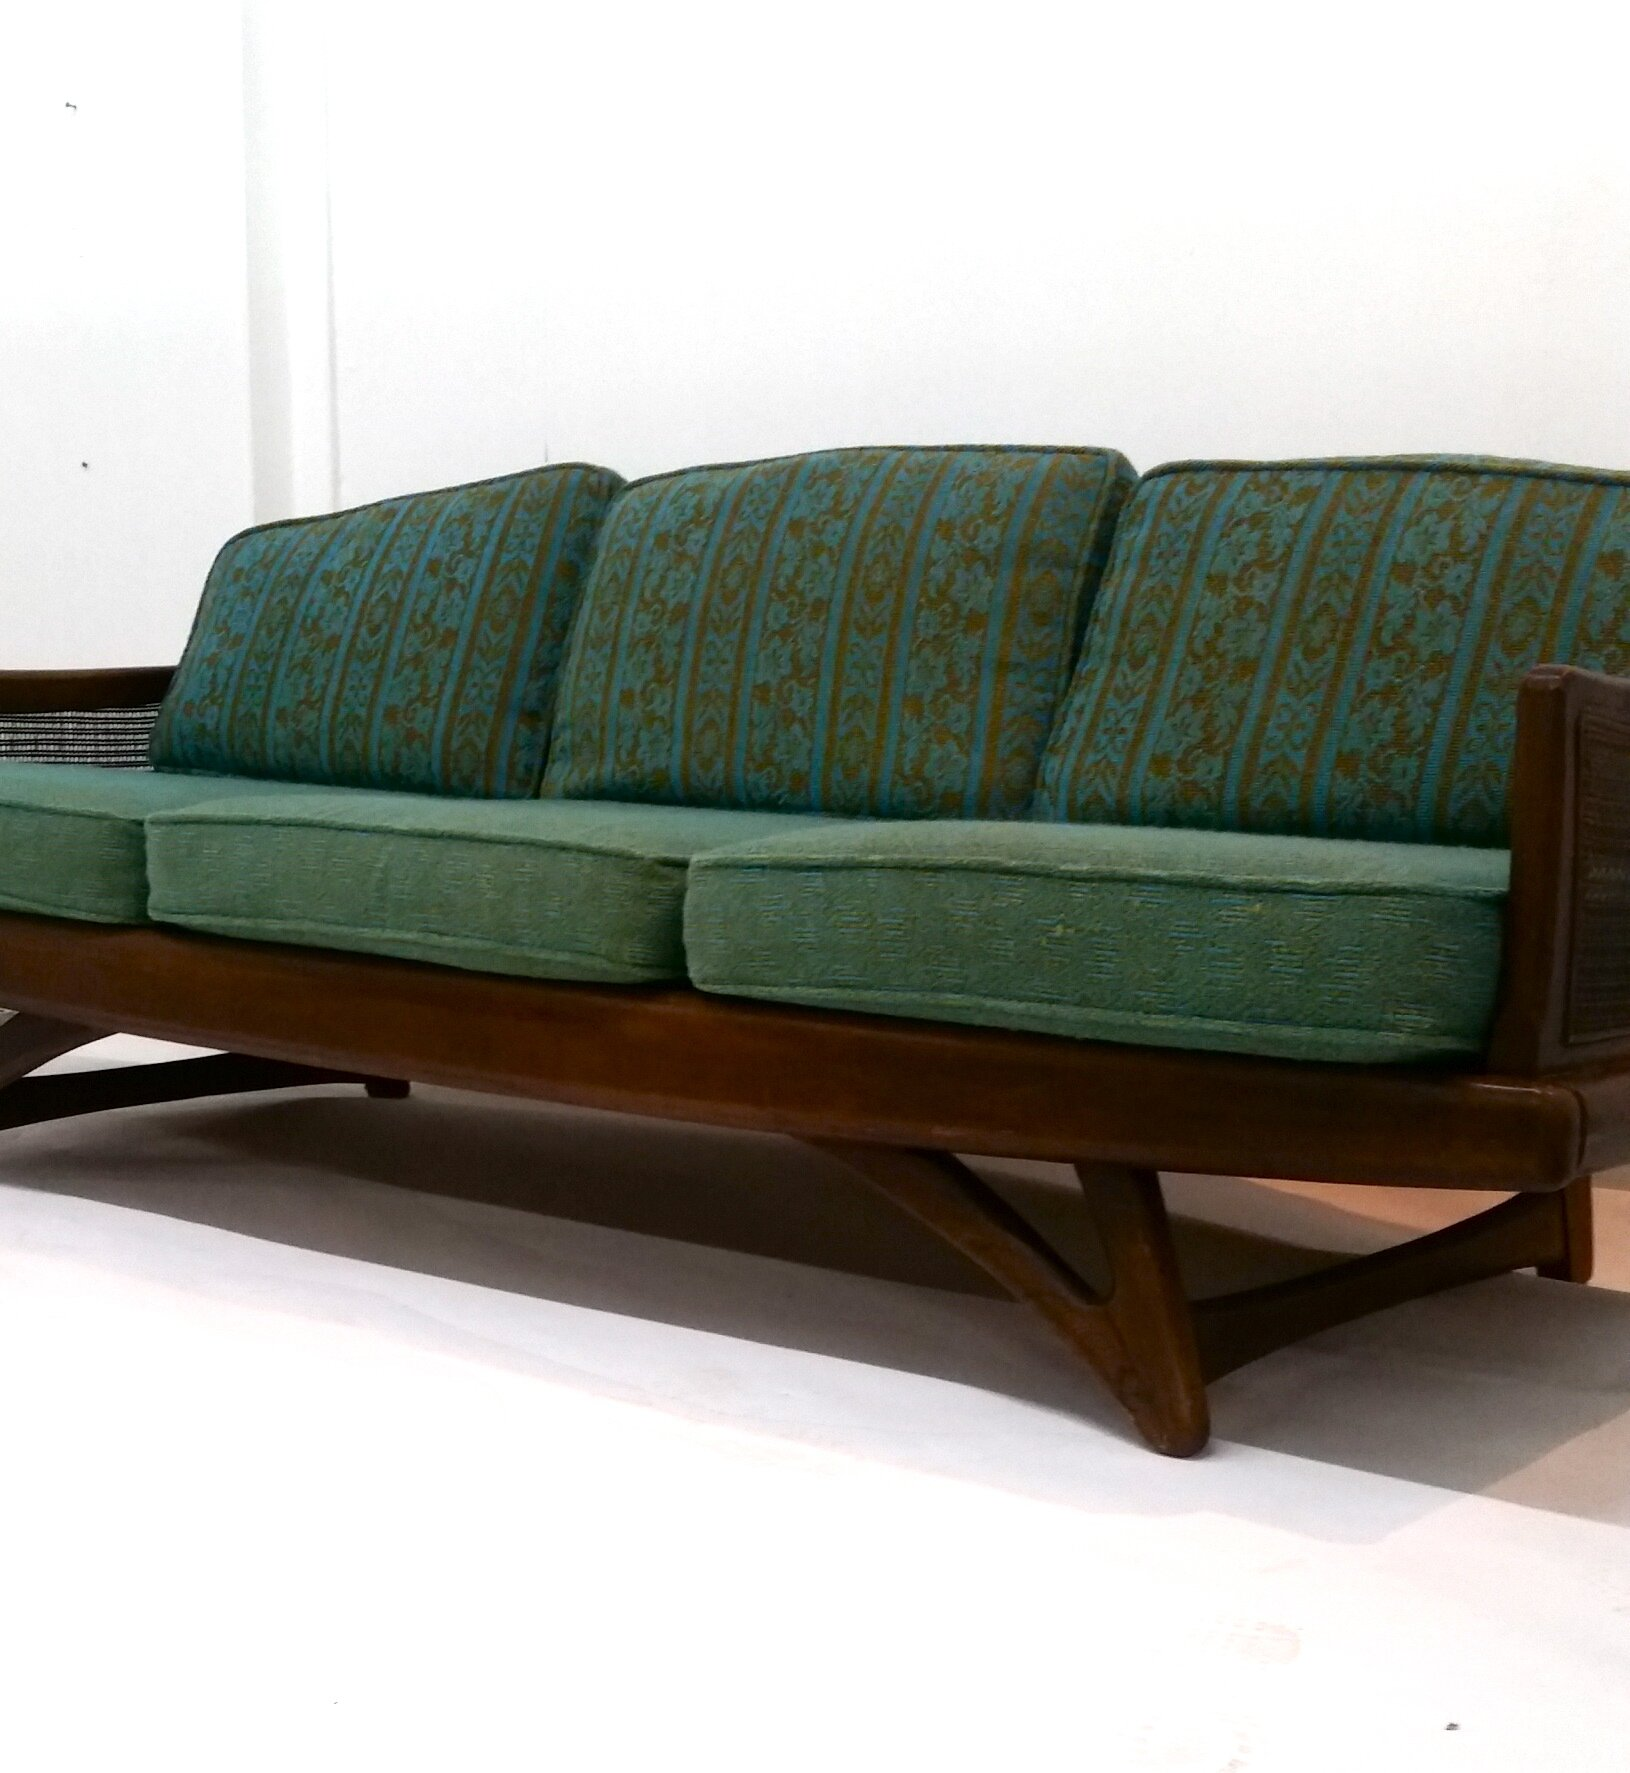 Danish modern sofas danish modern teak sofa clics thesofa for Cheap modern furniture reddit